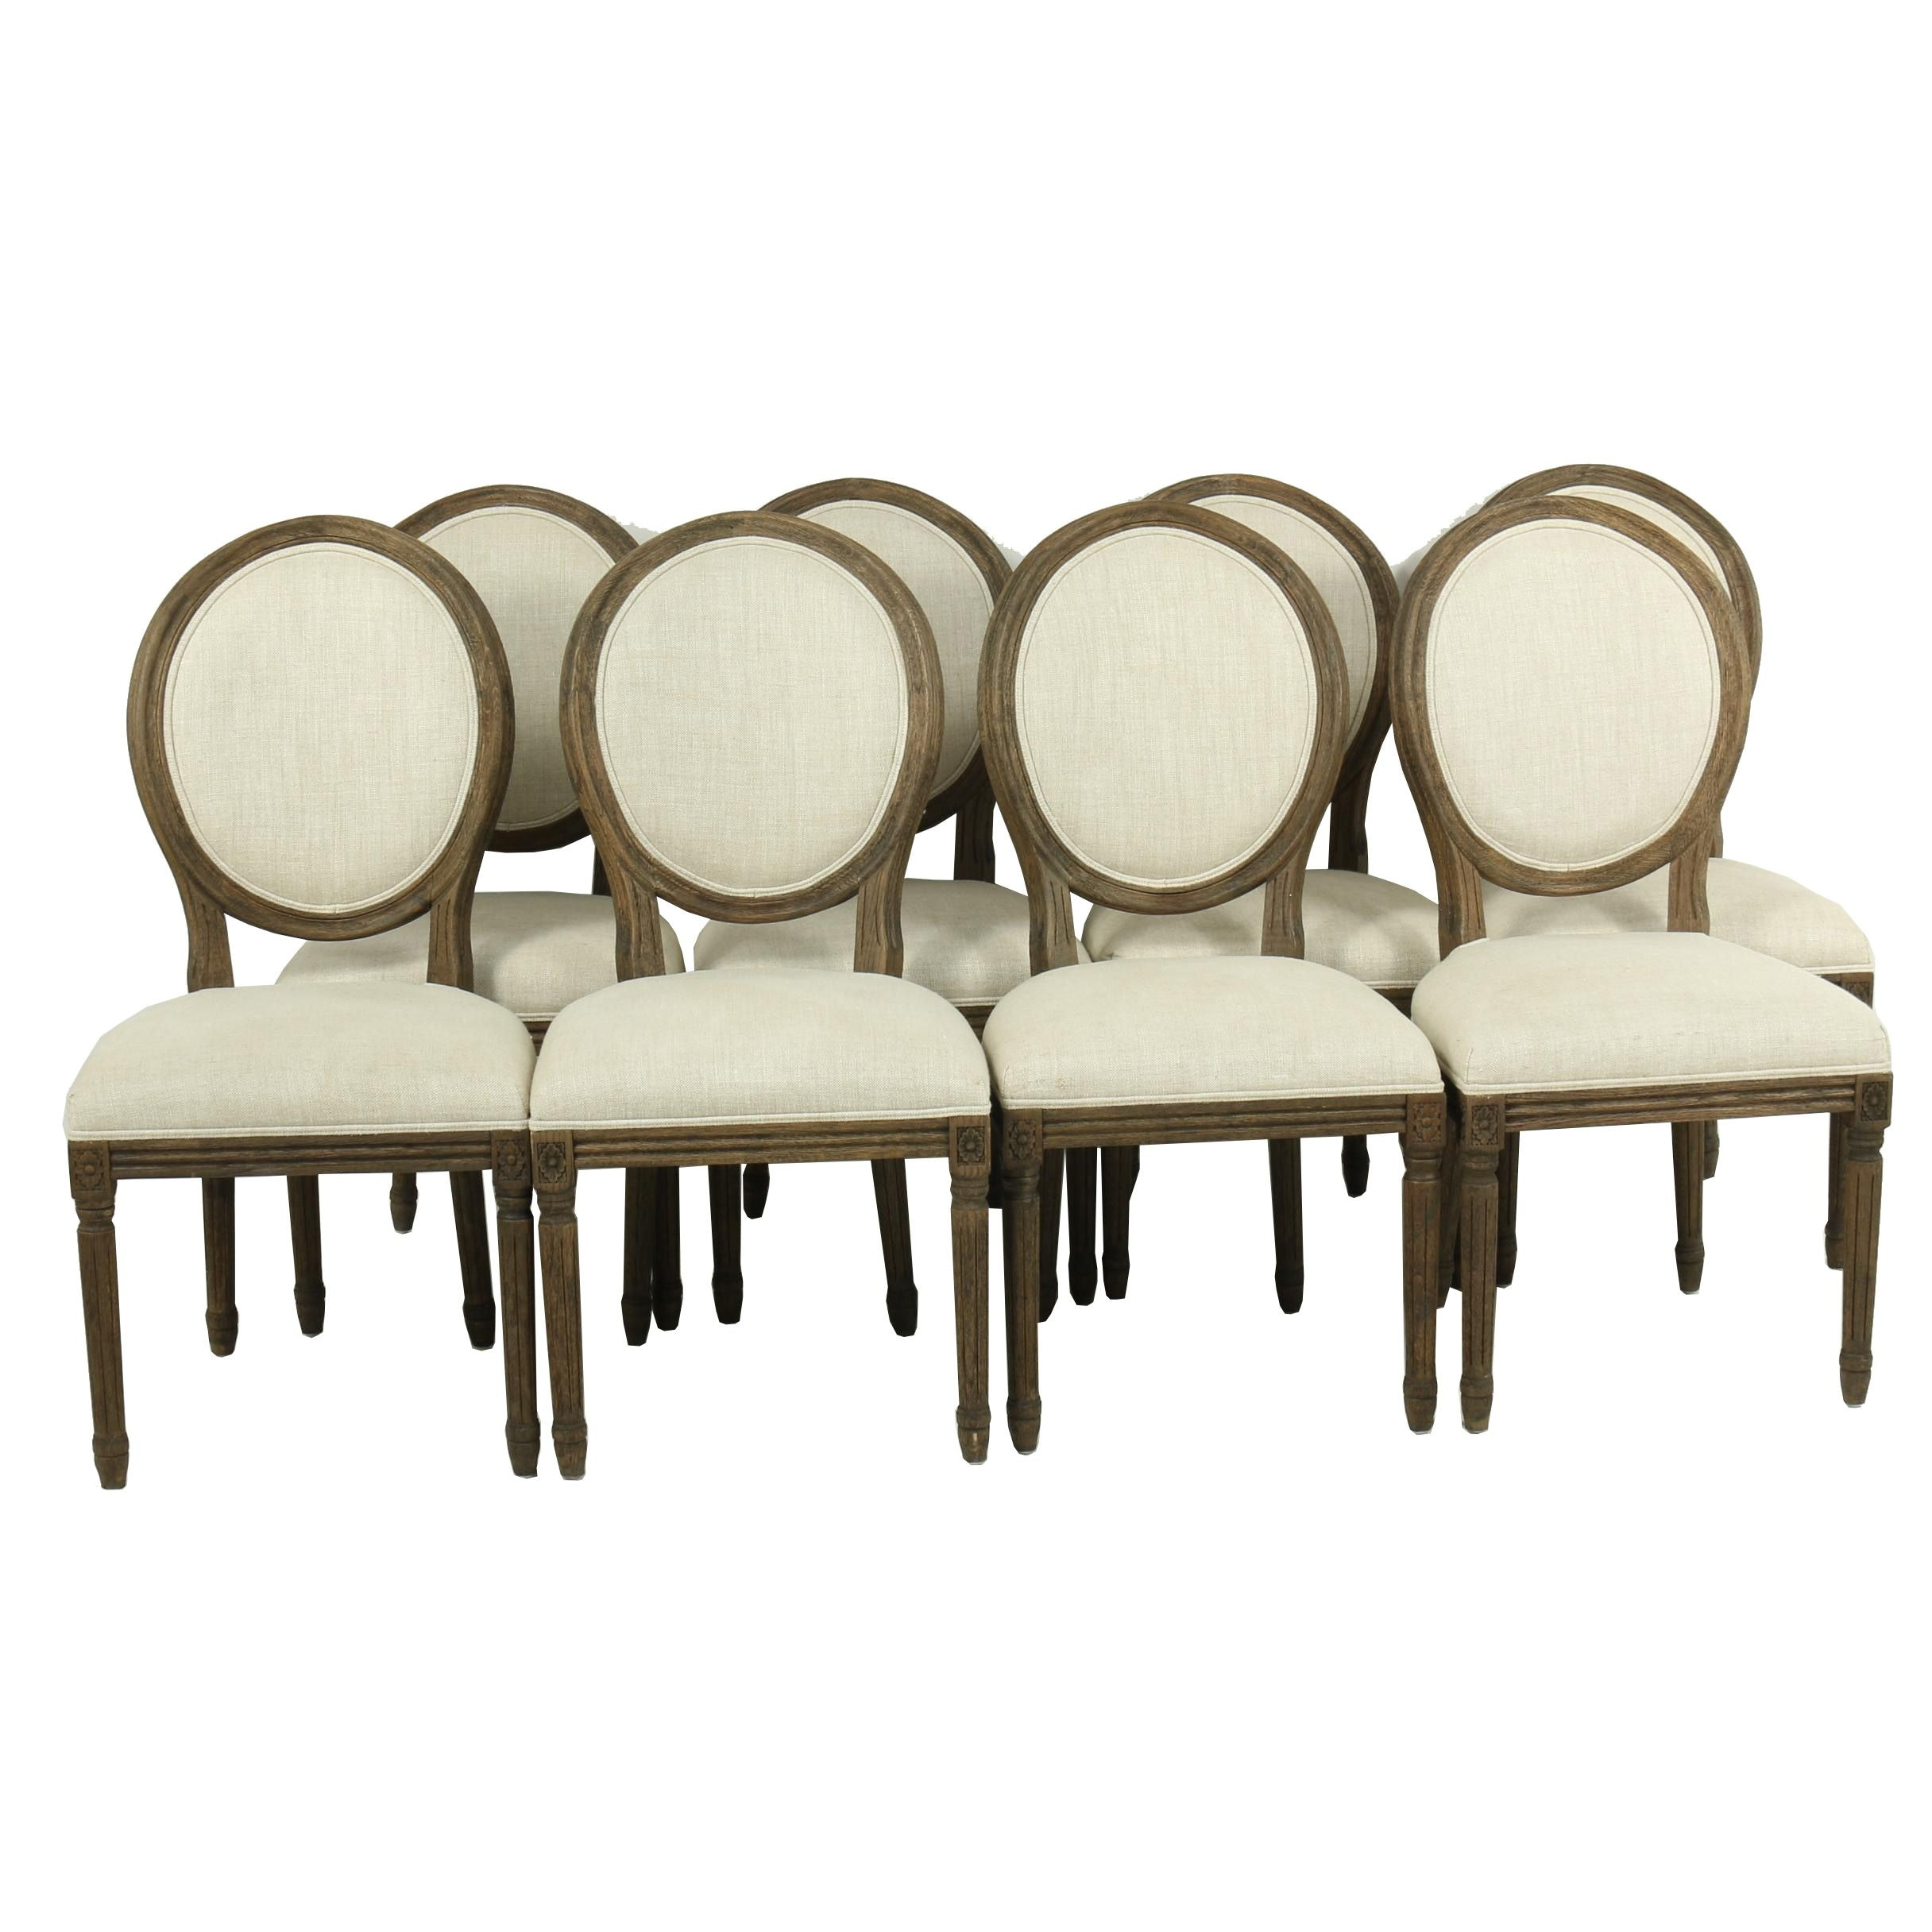 Louis XVI Style Balloon Back Dining Chairs by Restoration Hardware, 21st Century